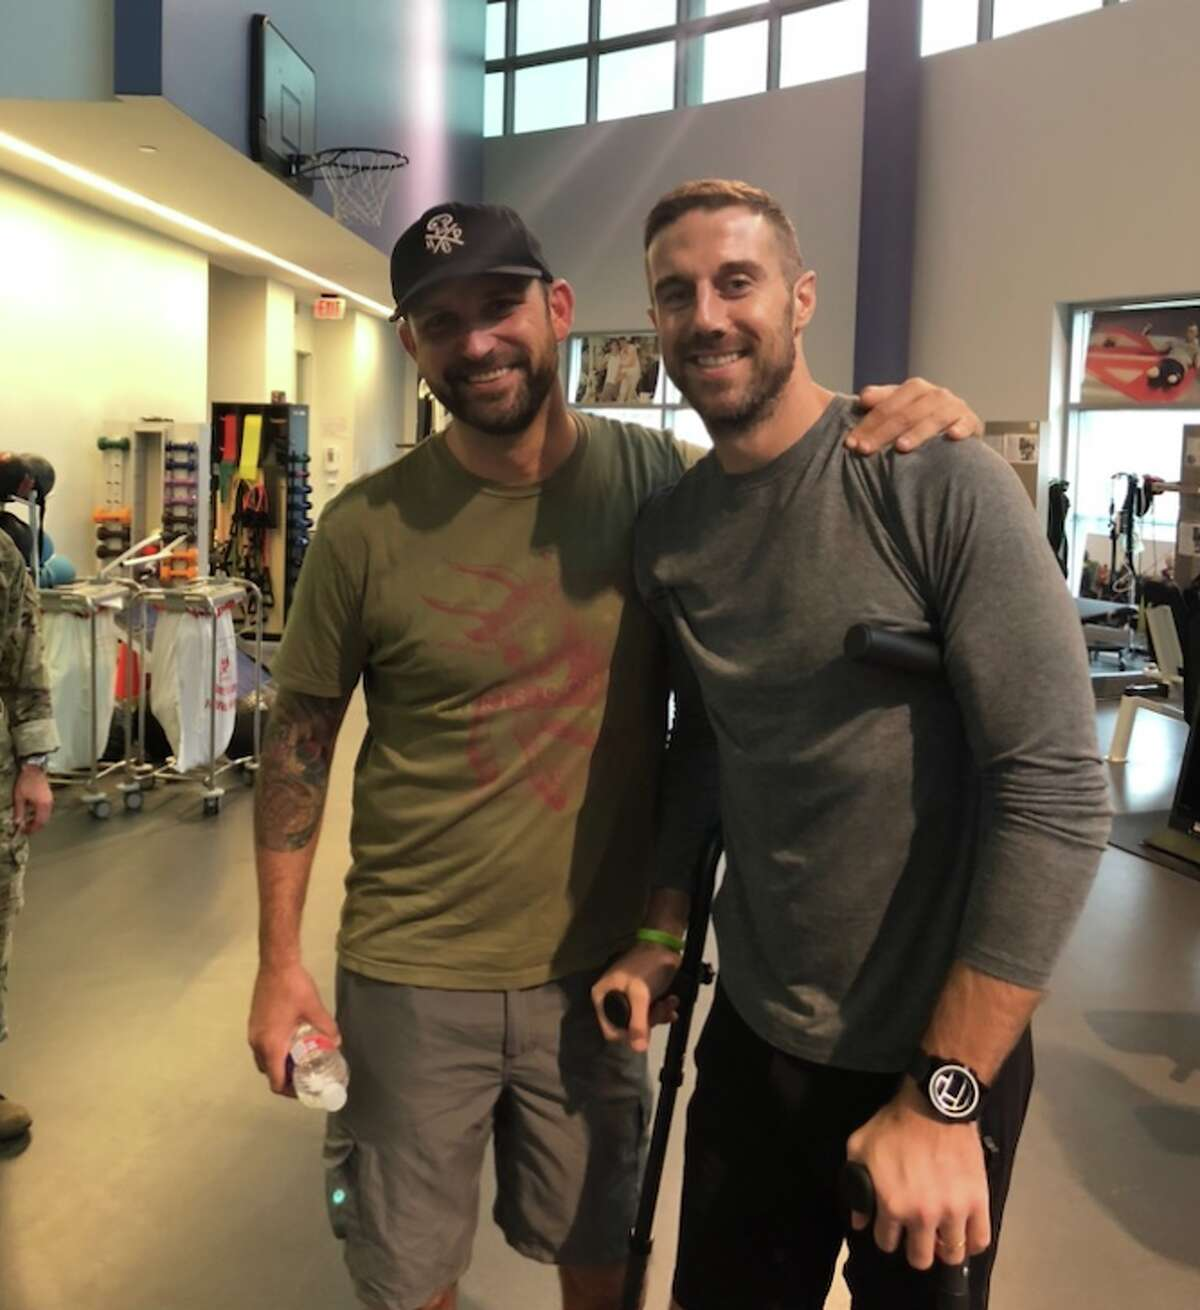 Jared LaDuke shared his experience of a severe leg injury with NFL quarterback Alex Smith at the Center for the Intrepid in San Antonio. Smith spent time in San Antonio for rehab after a